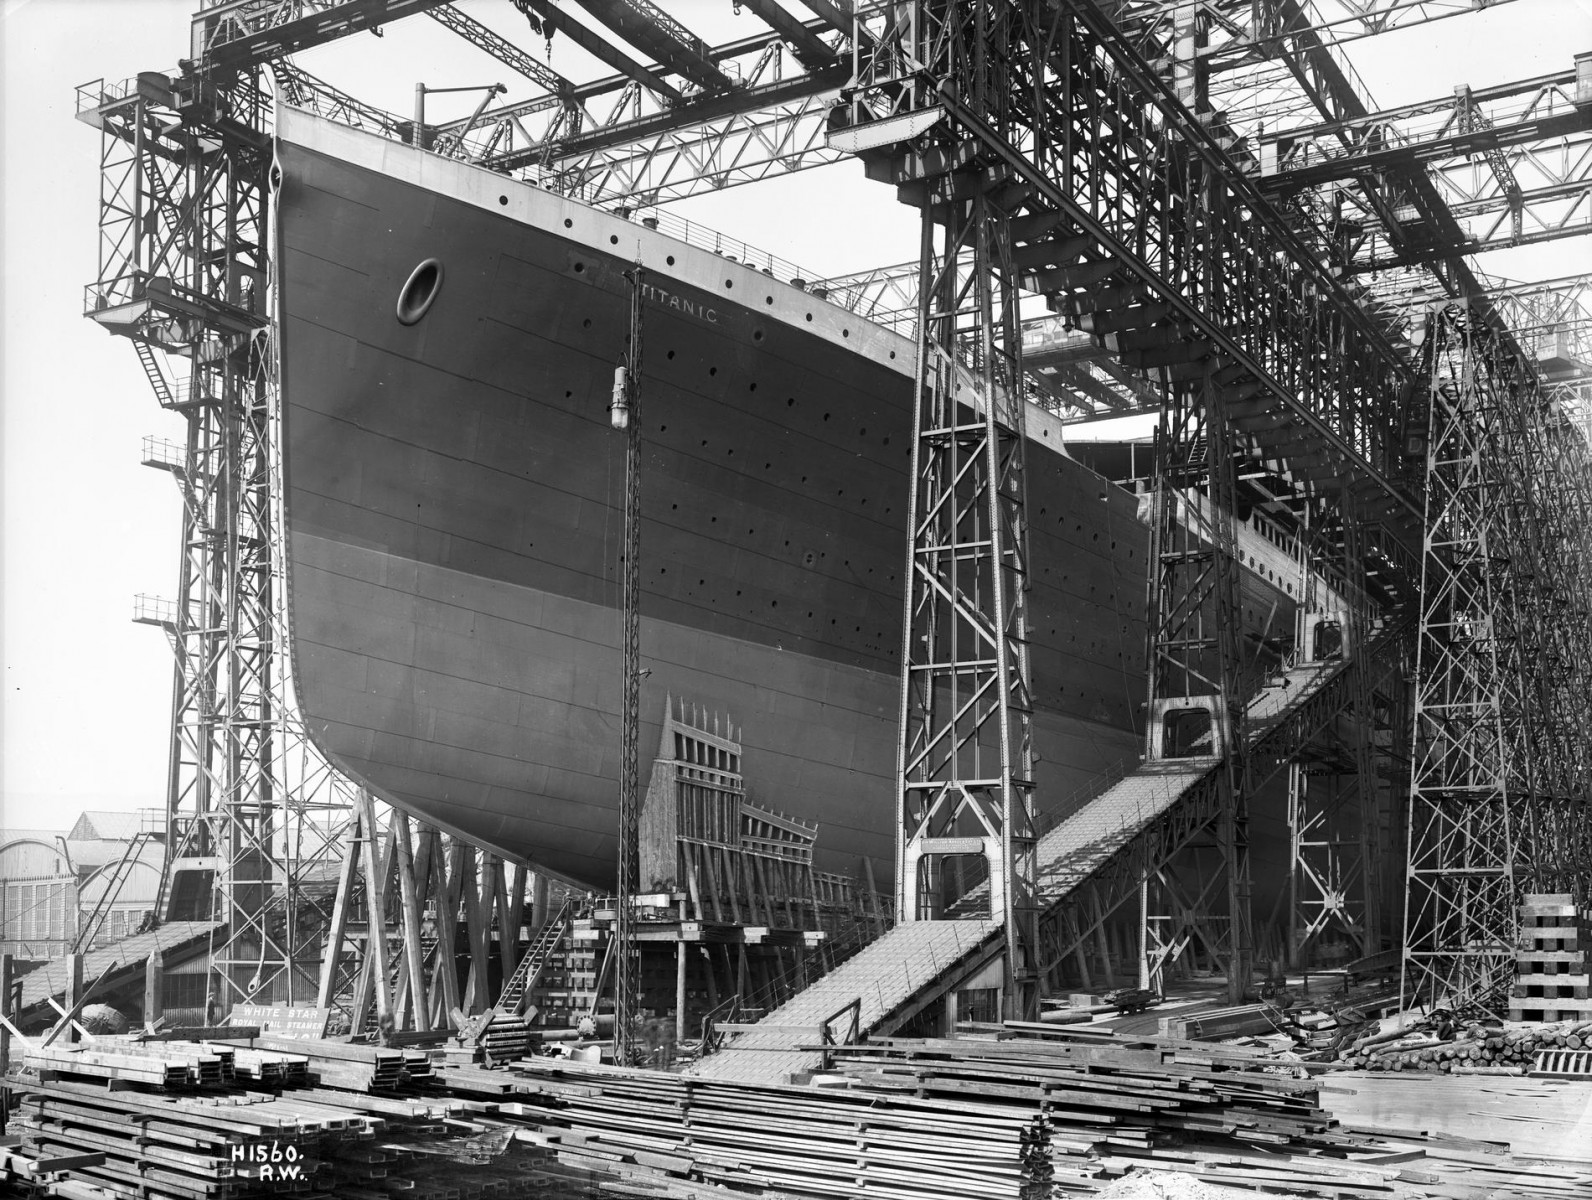 The RMS Titanic preparing for launch.